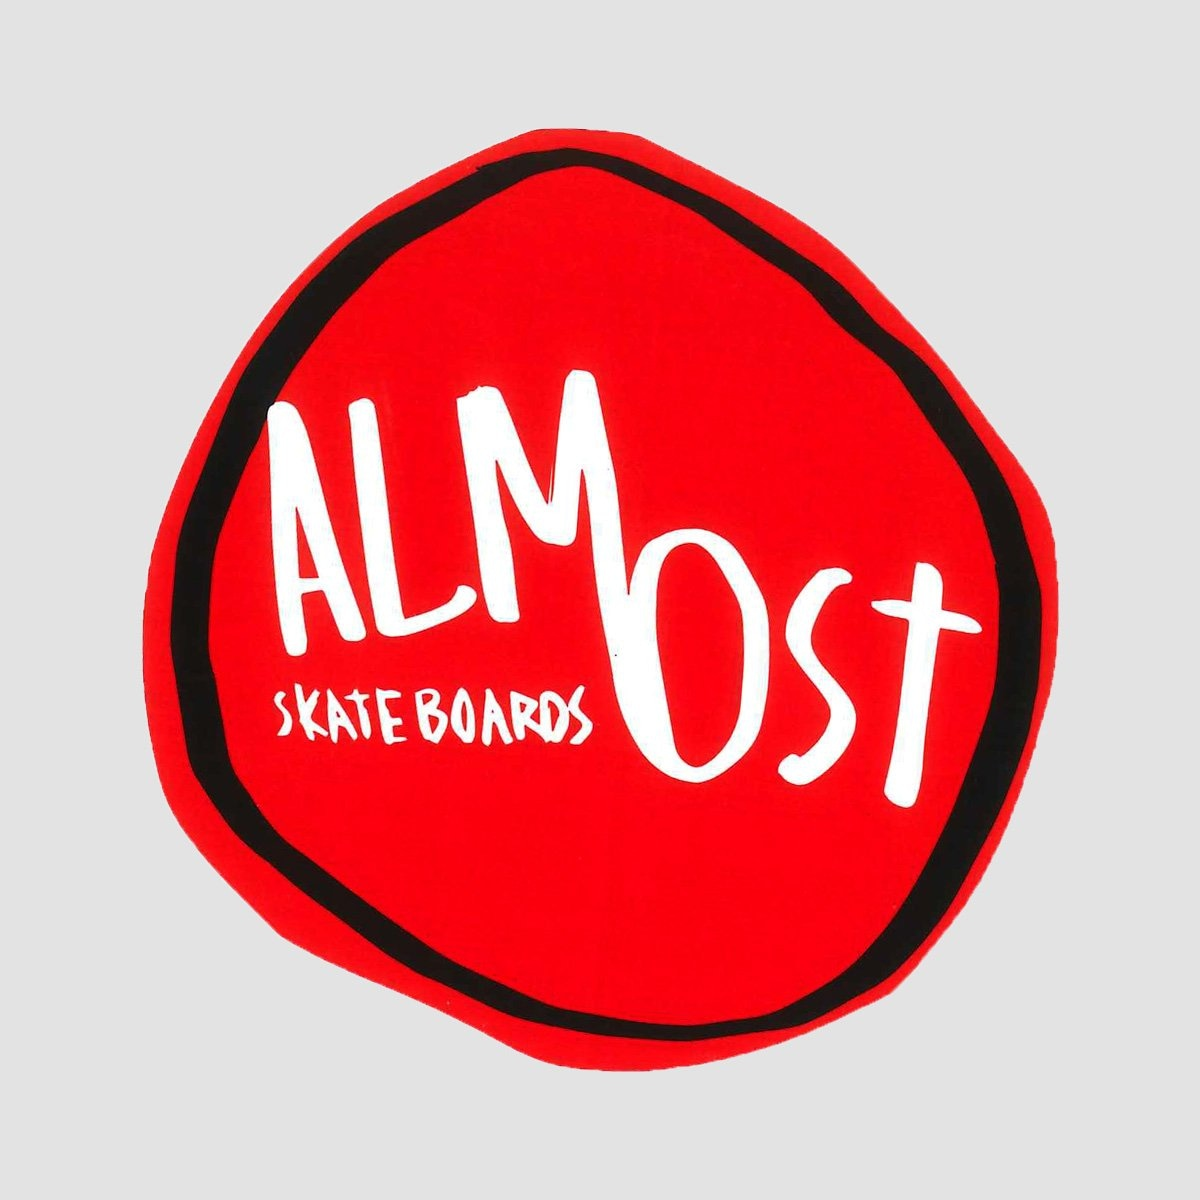 Almost Splat Logo Sticker Red - Skateboard